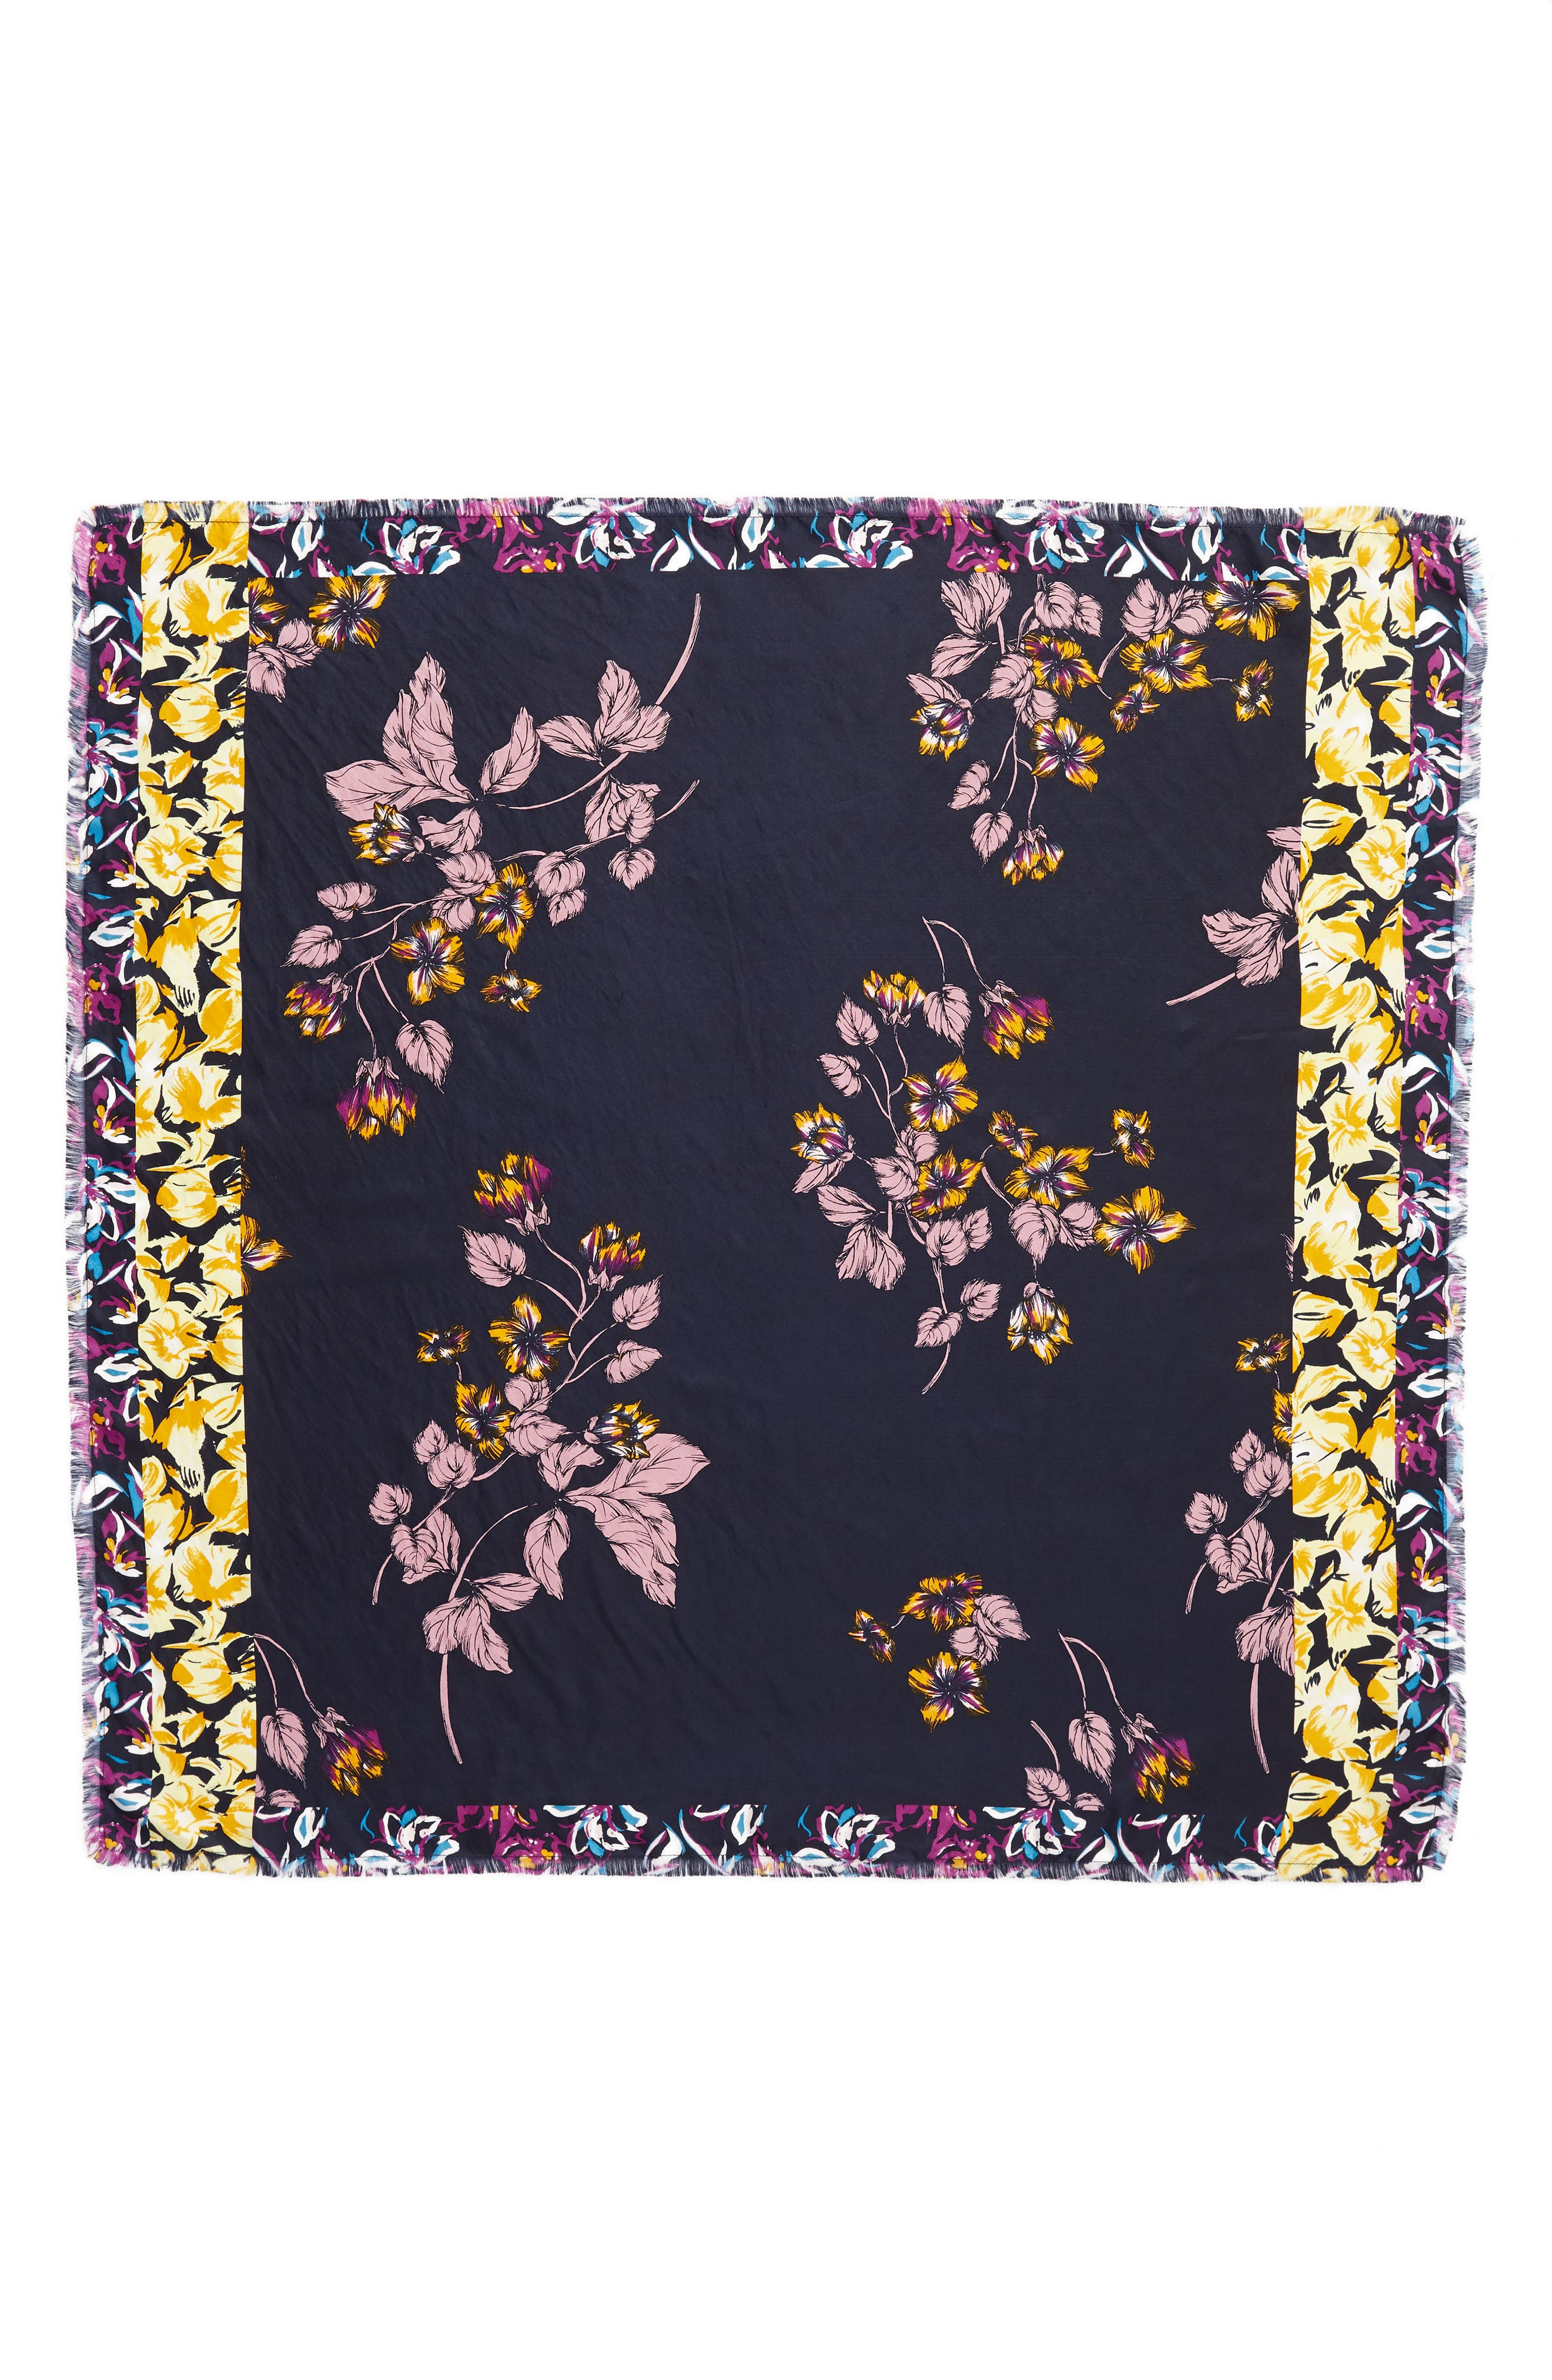 Floral Print Silk Twill Scarf,                             Alternate thumbnail 3, color,                             YELLOW MIRIAM PRINT